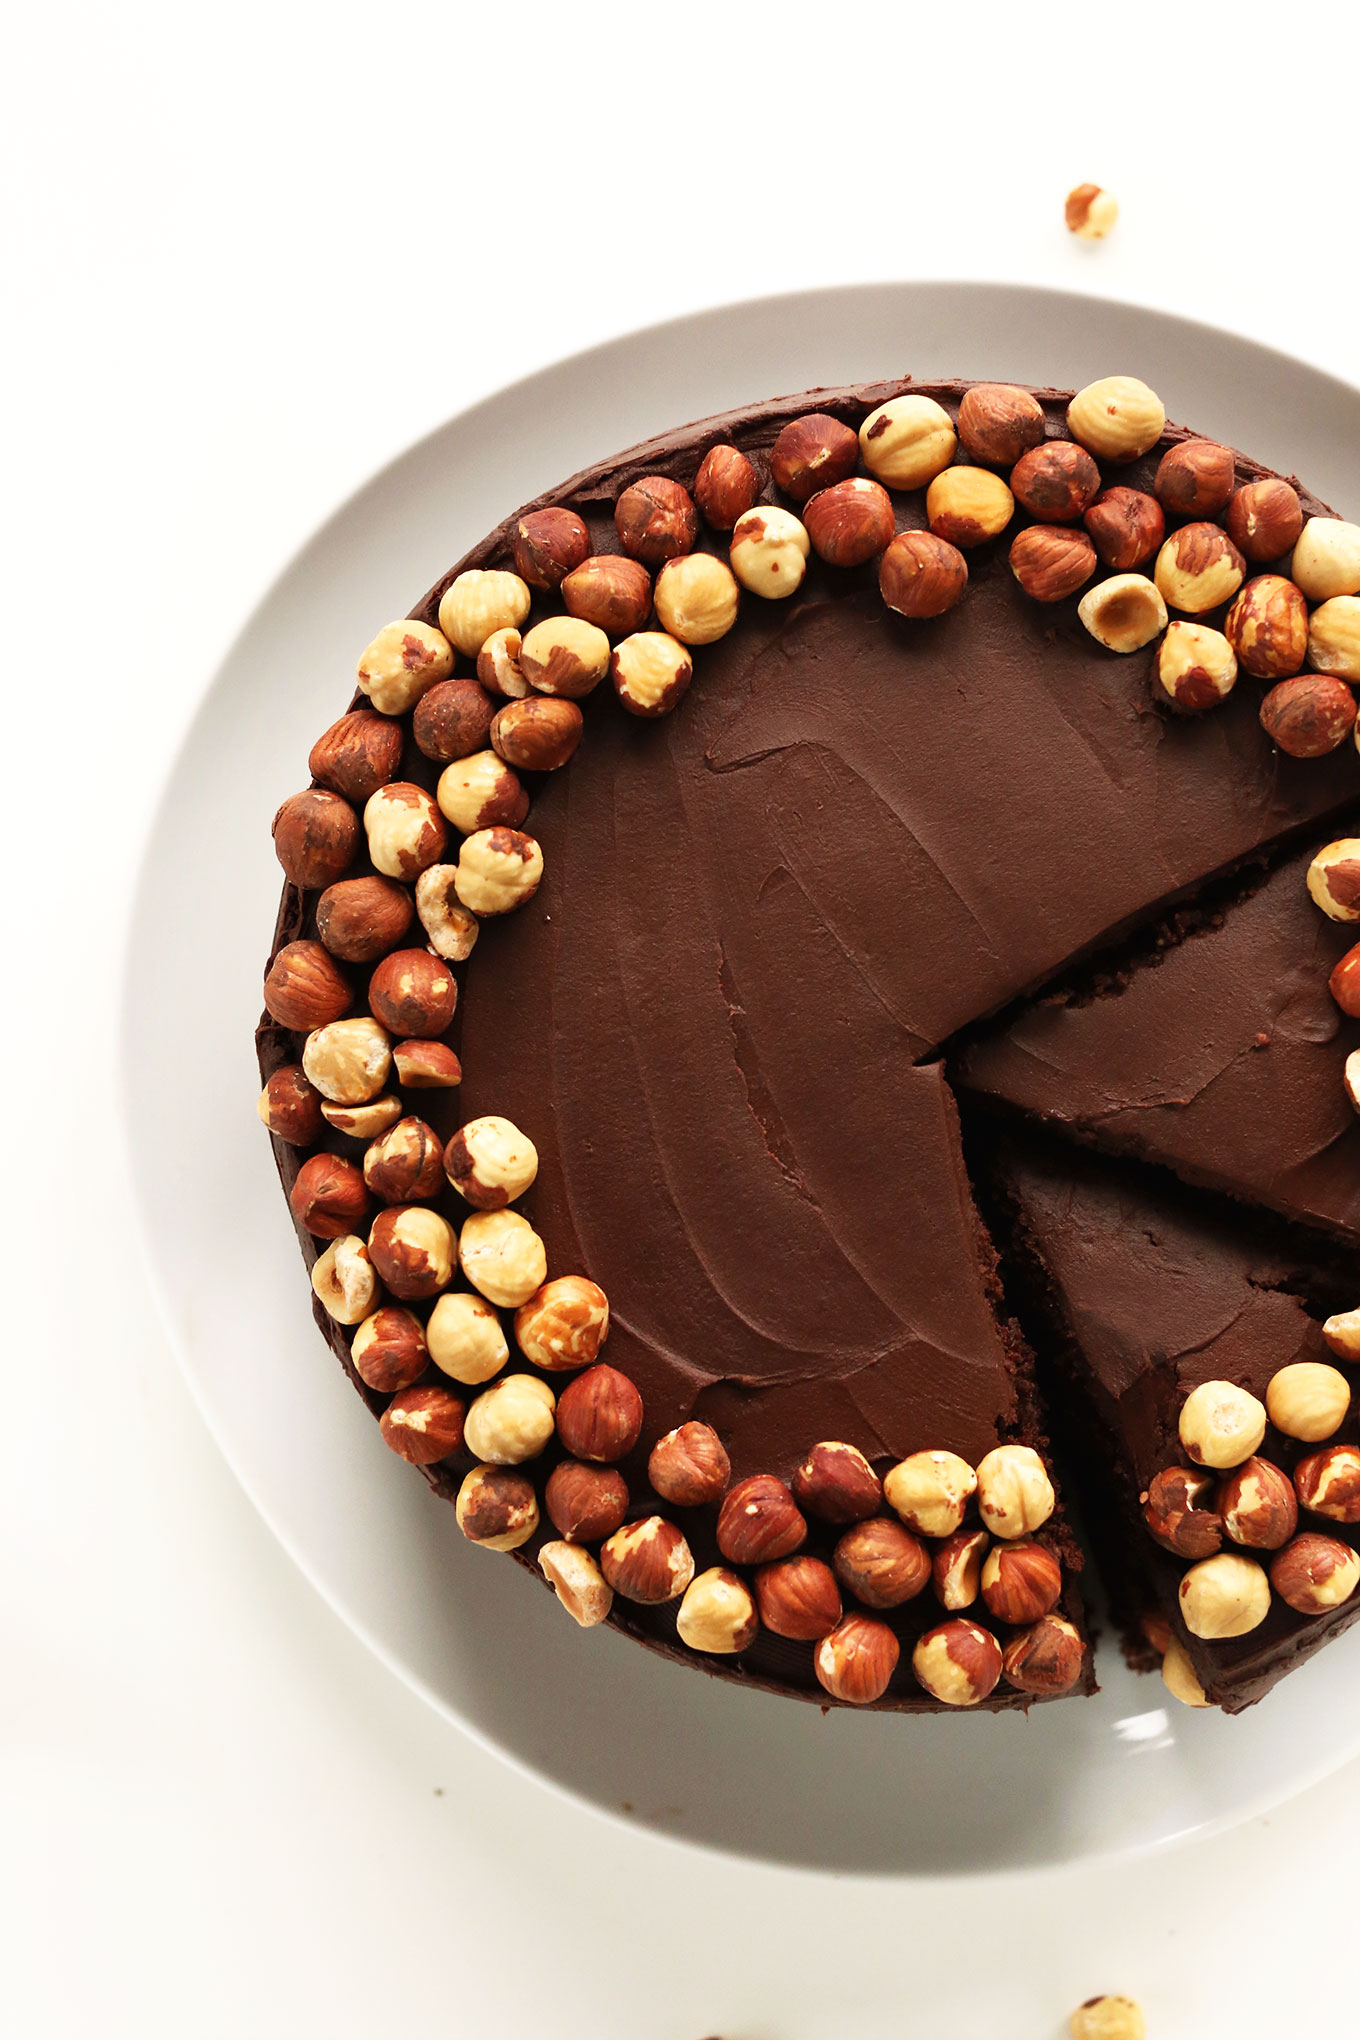 Partially sliced gluten-free vegan Chocolate Hazelnut Cake